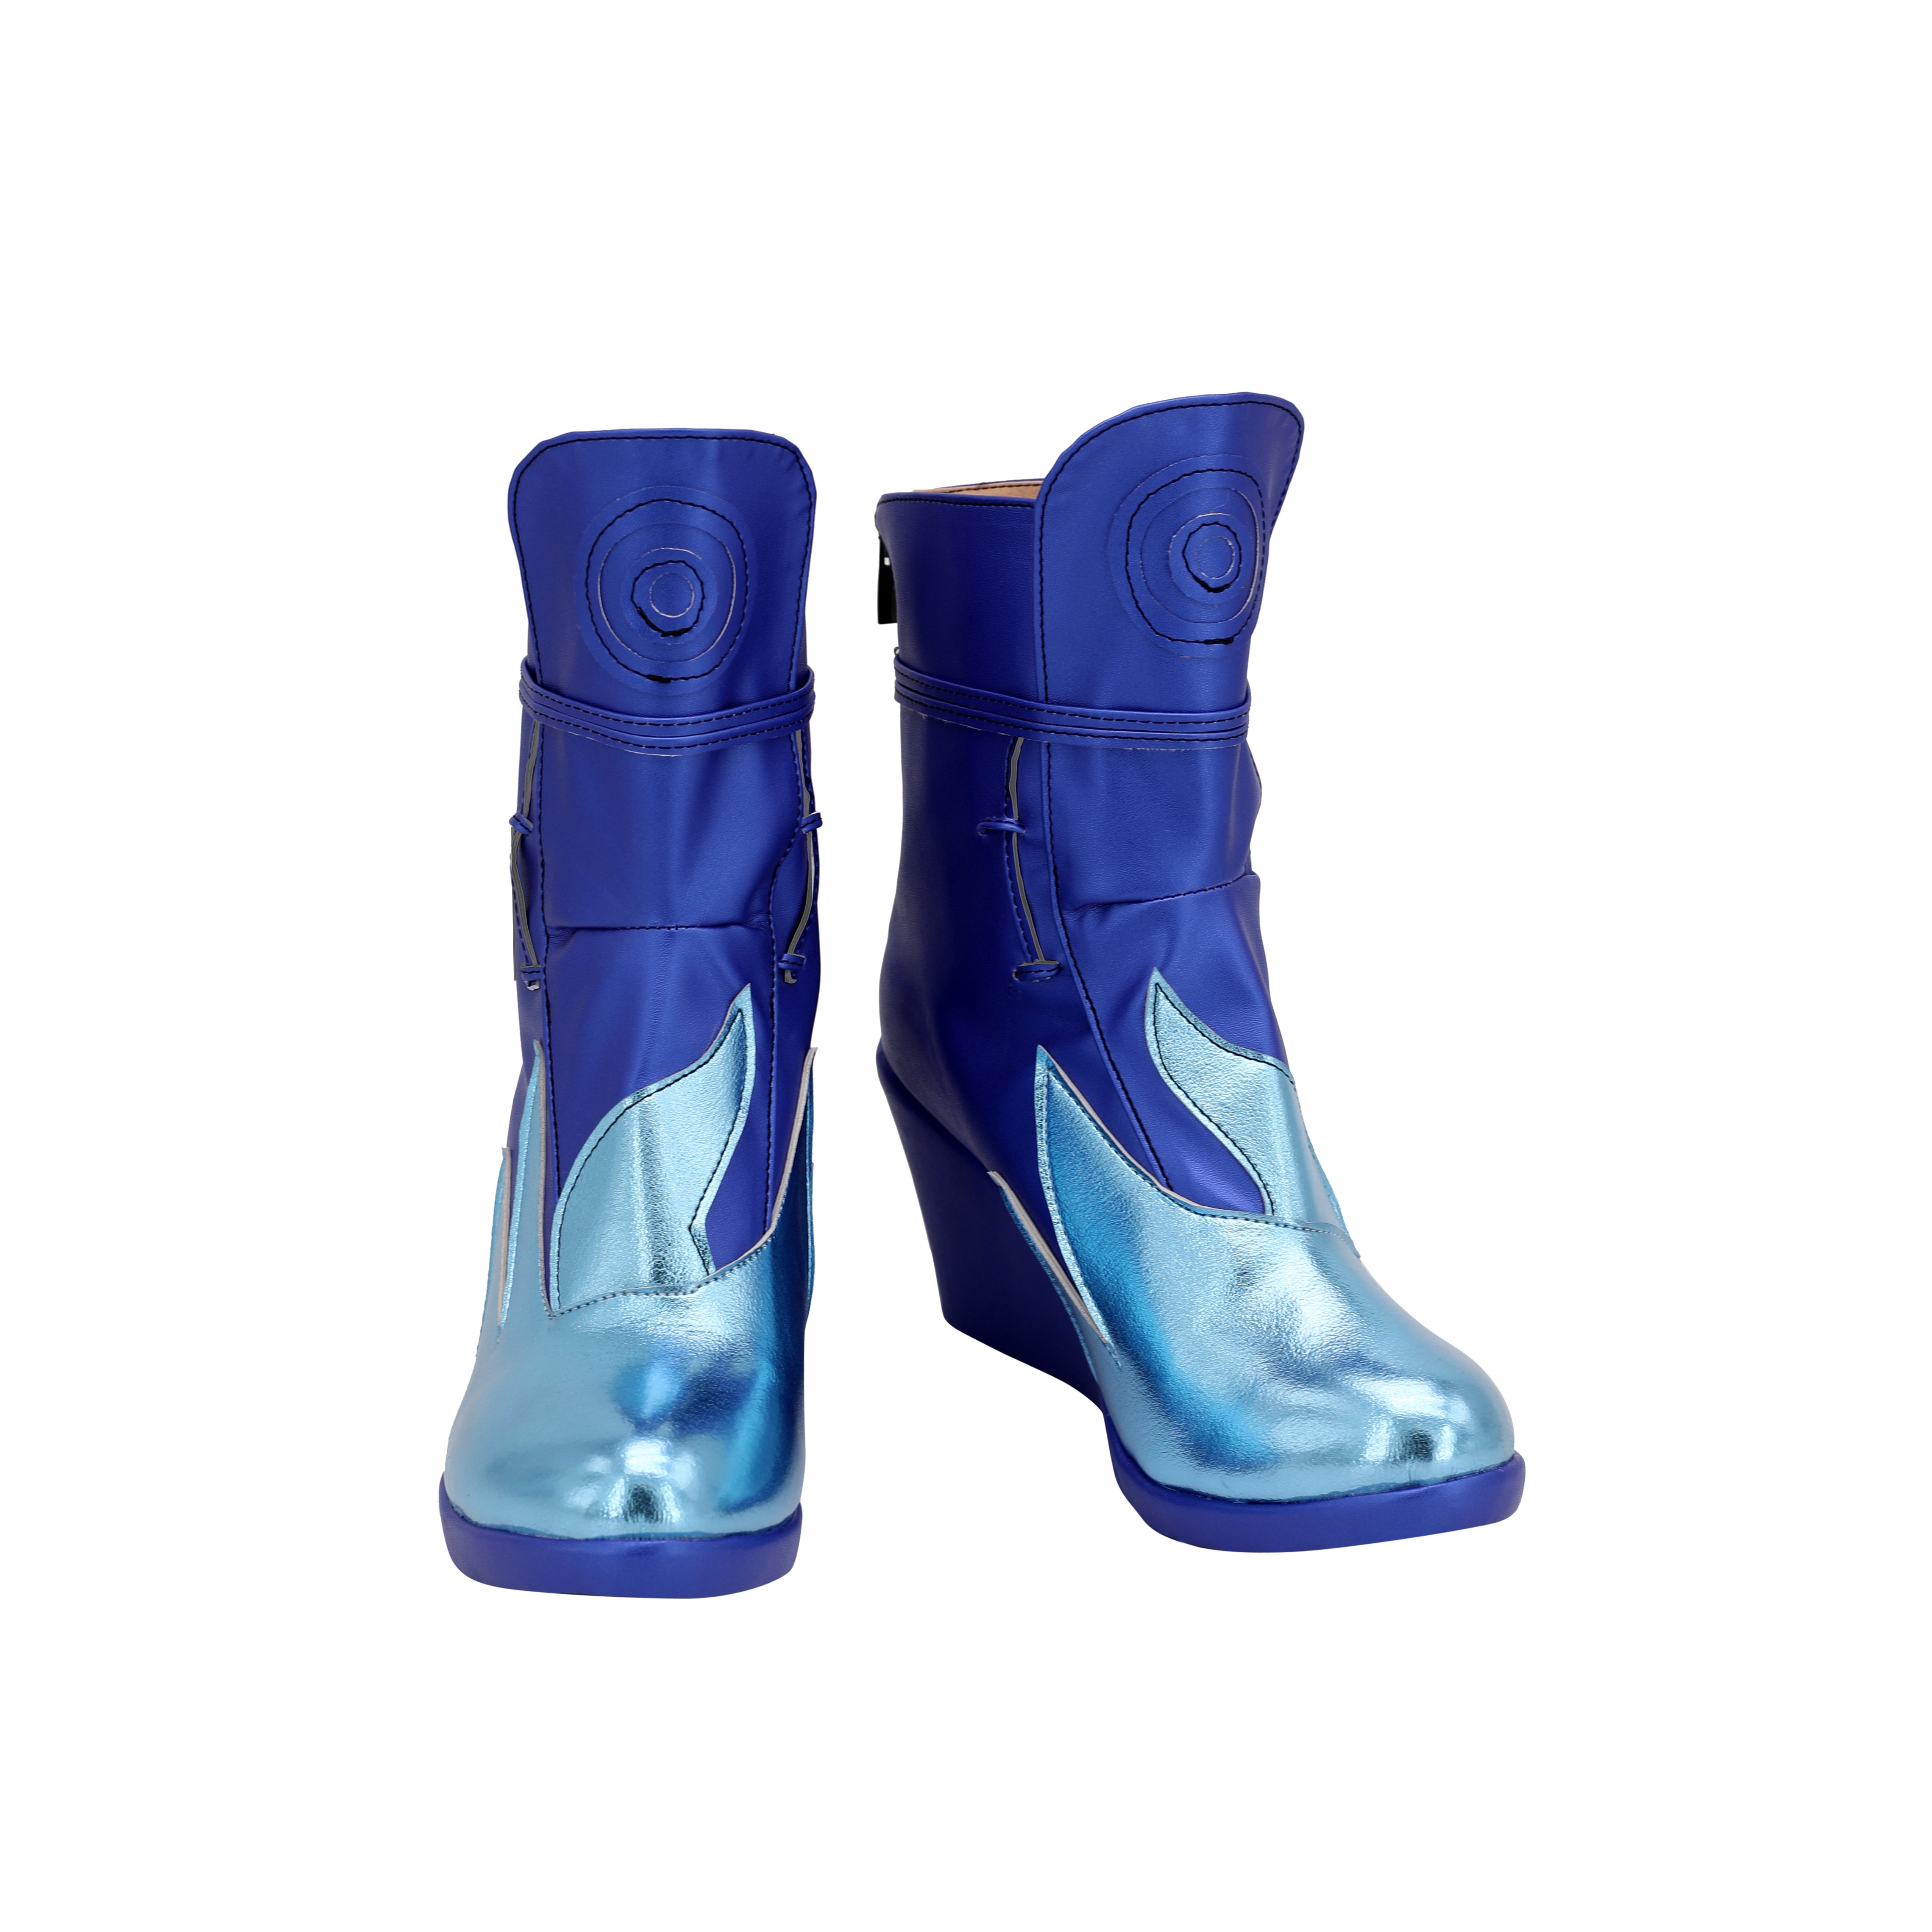 Evie Mal Cosplay Shoes Boots Custom